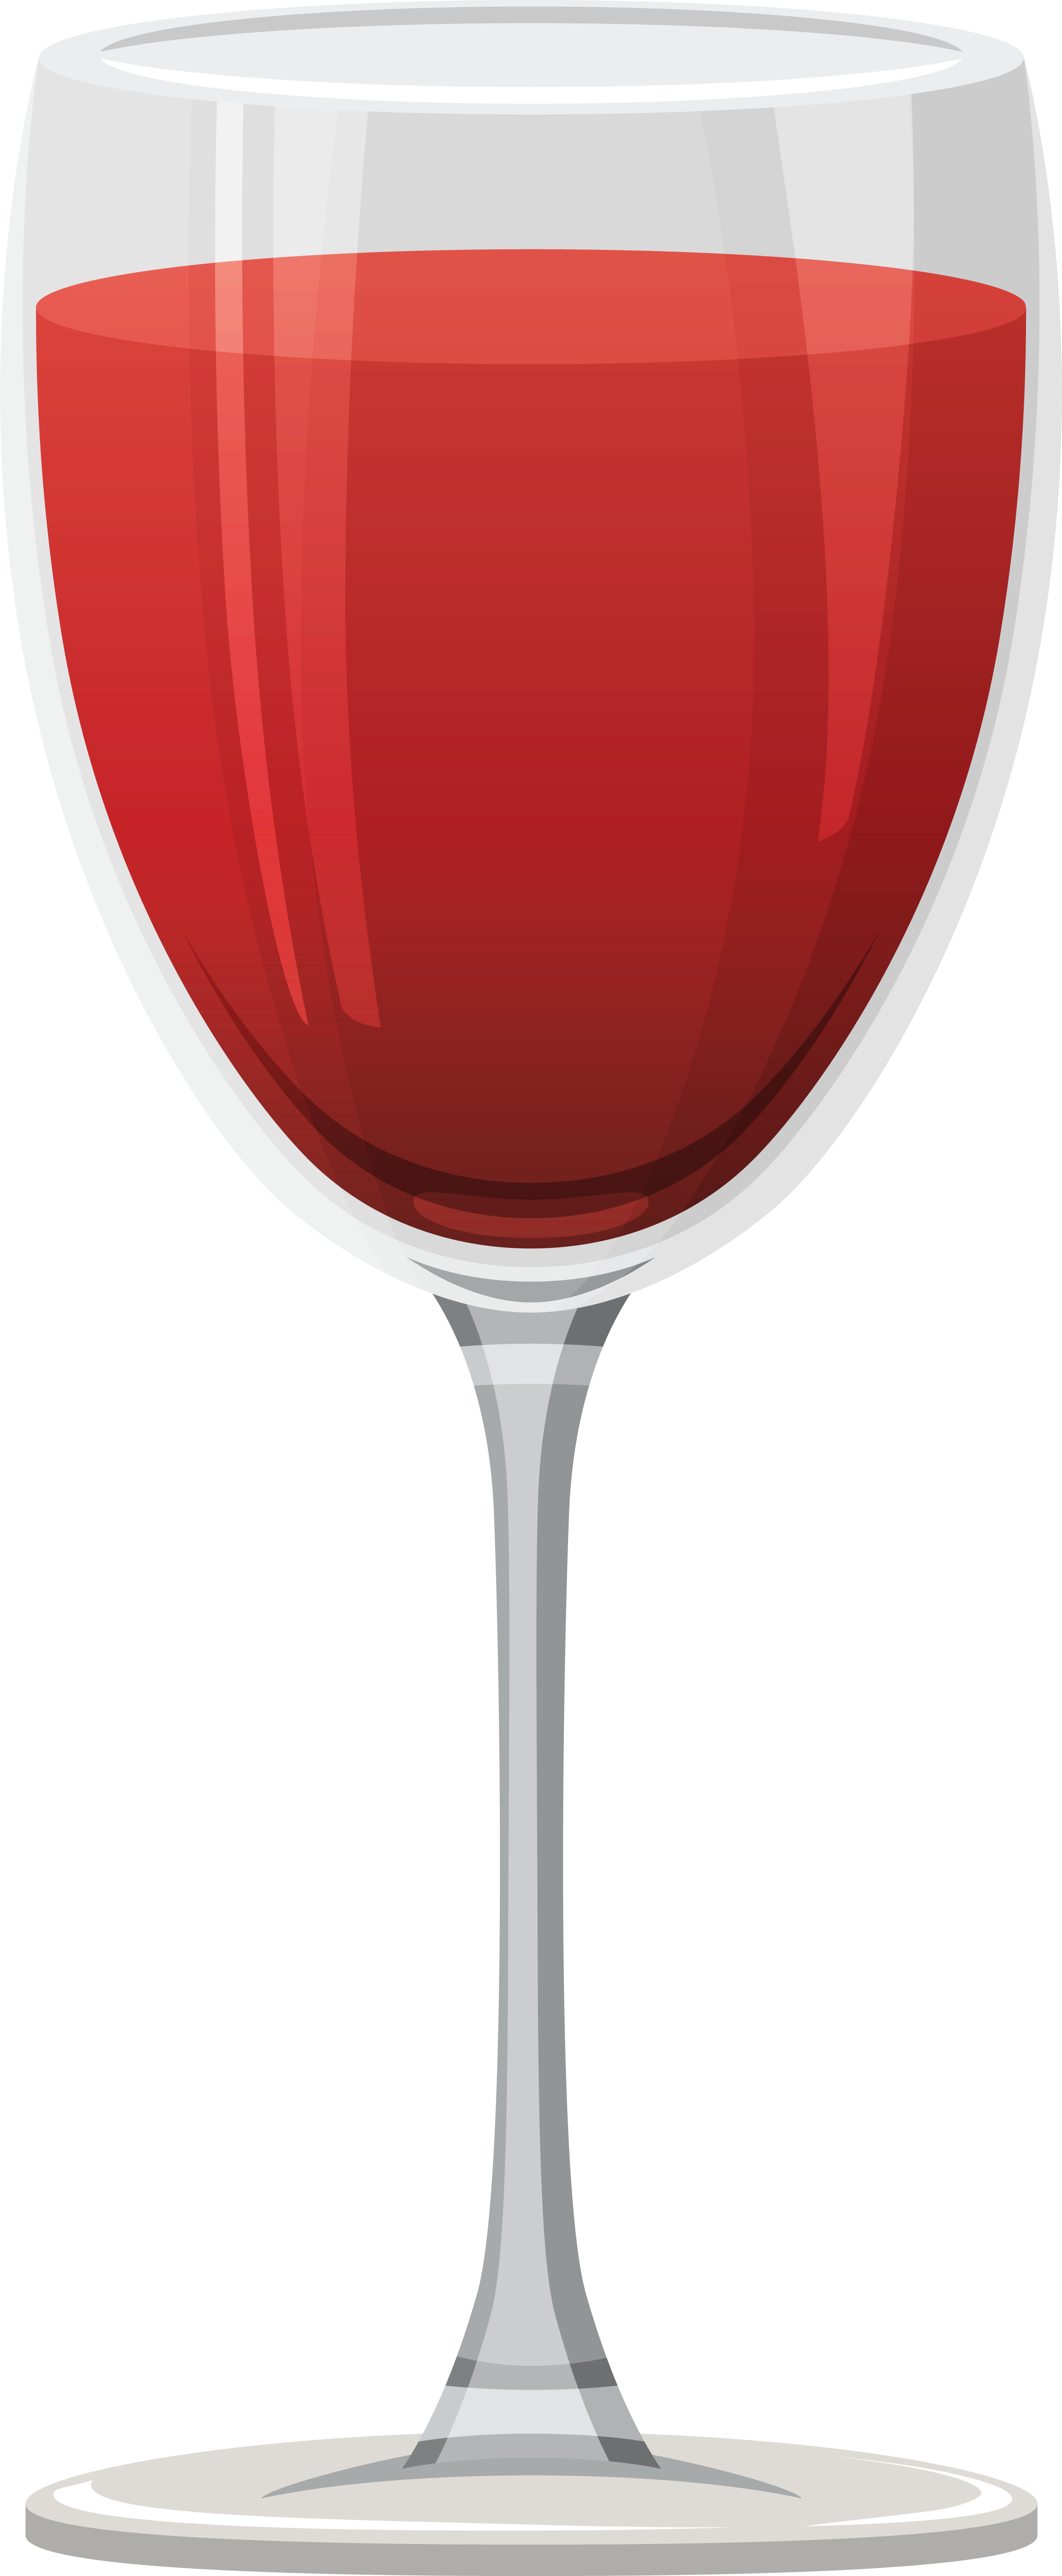 Of wine three isolated. Hole clipart glass transparent